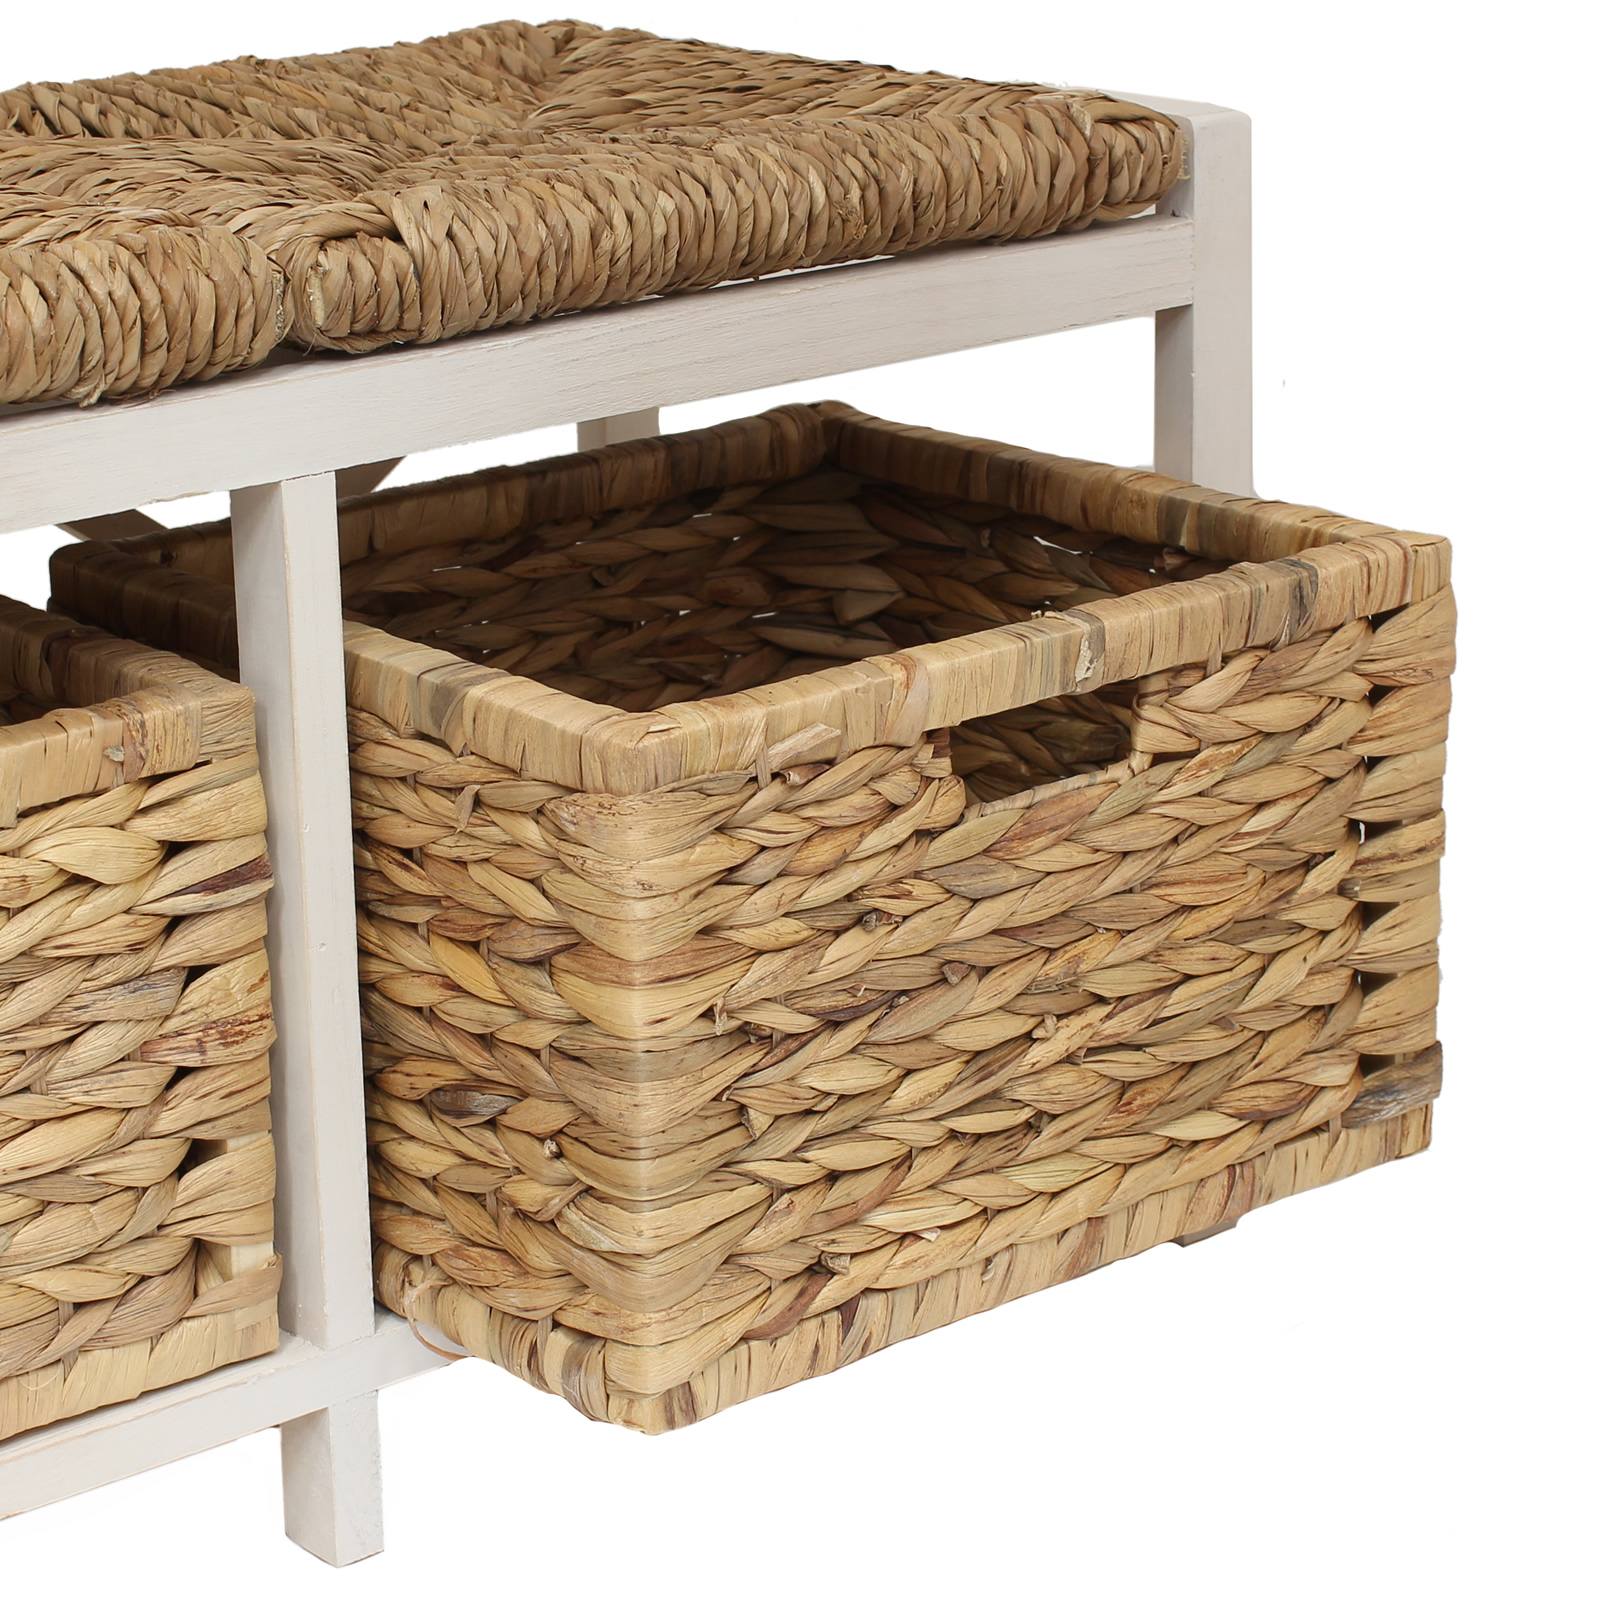 FARMHOUSE STYLE HALLWAY BATHROOM WICKER CUSHION BENCH SEAT & STORAGE BASKETS